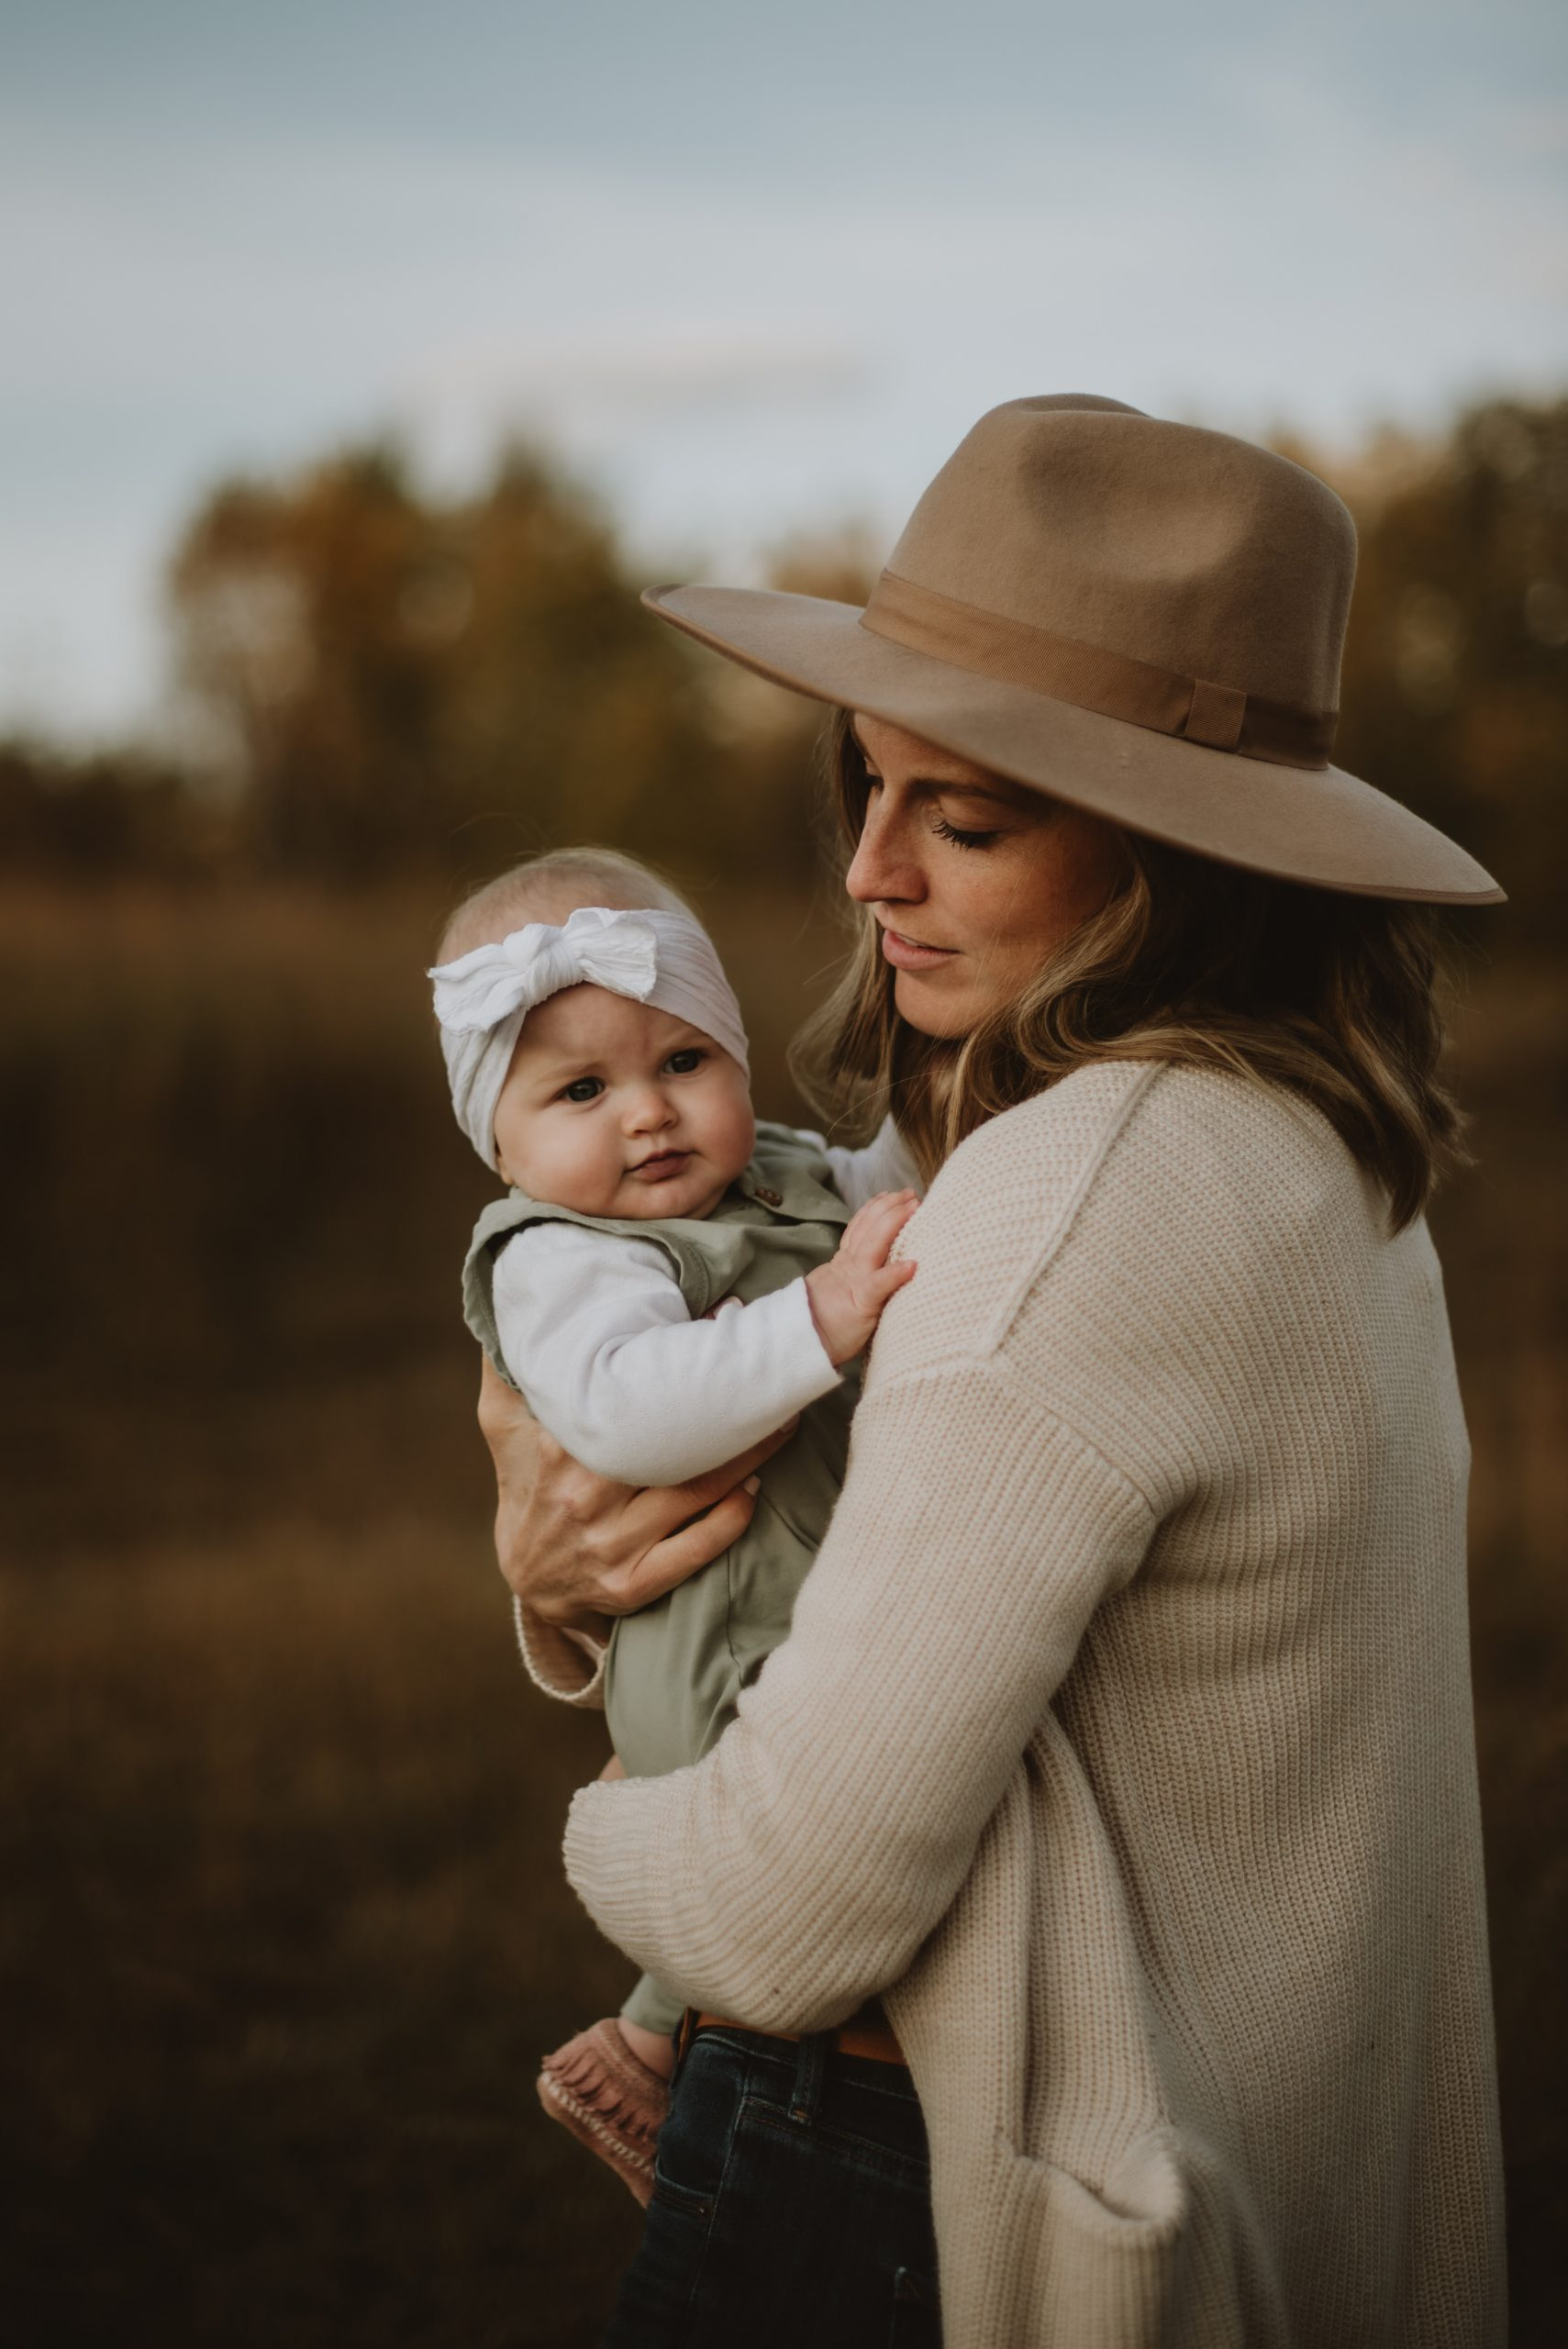 Woman in hat holding baby daughter in a field